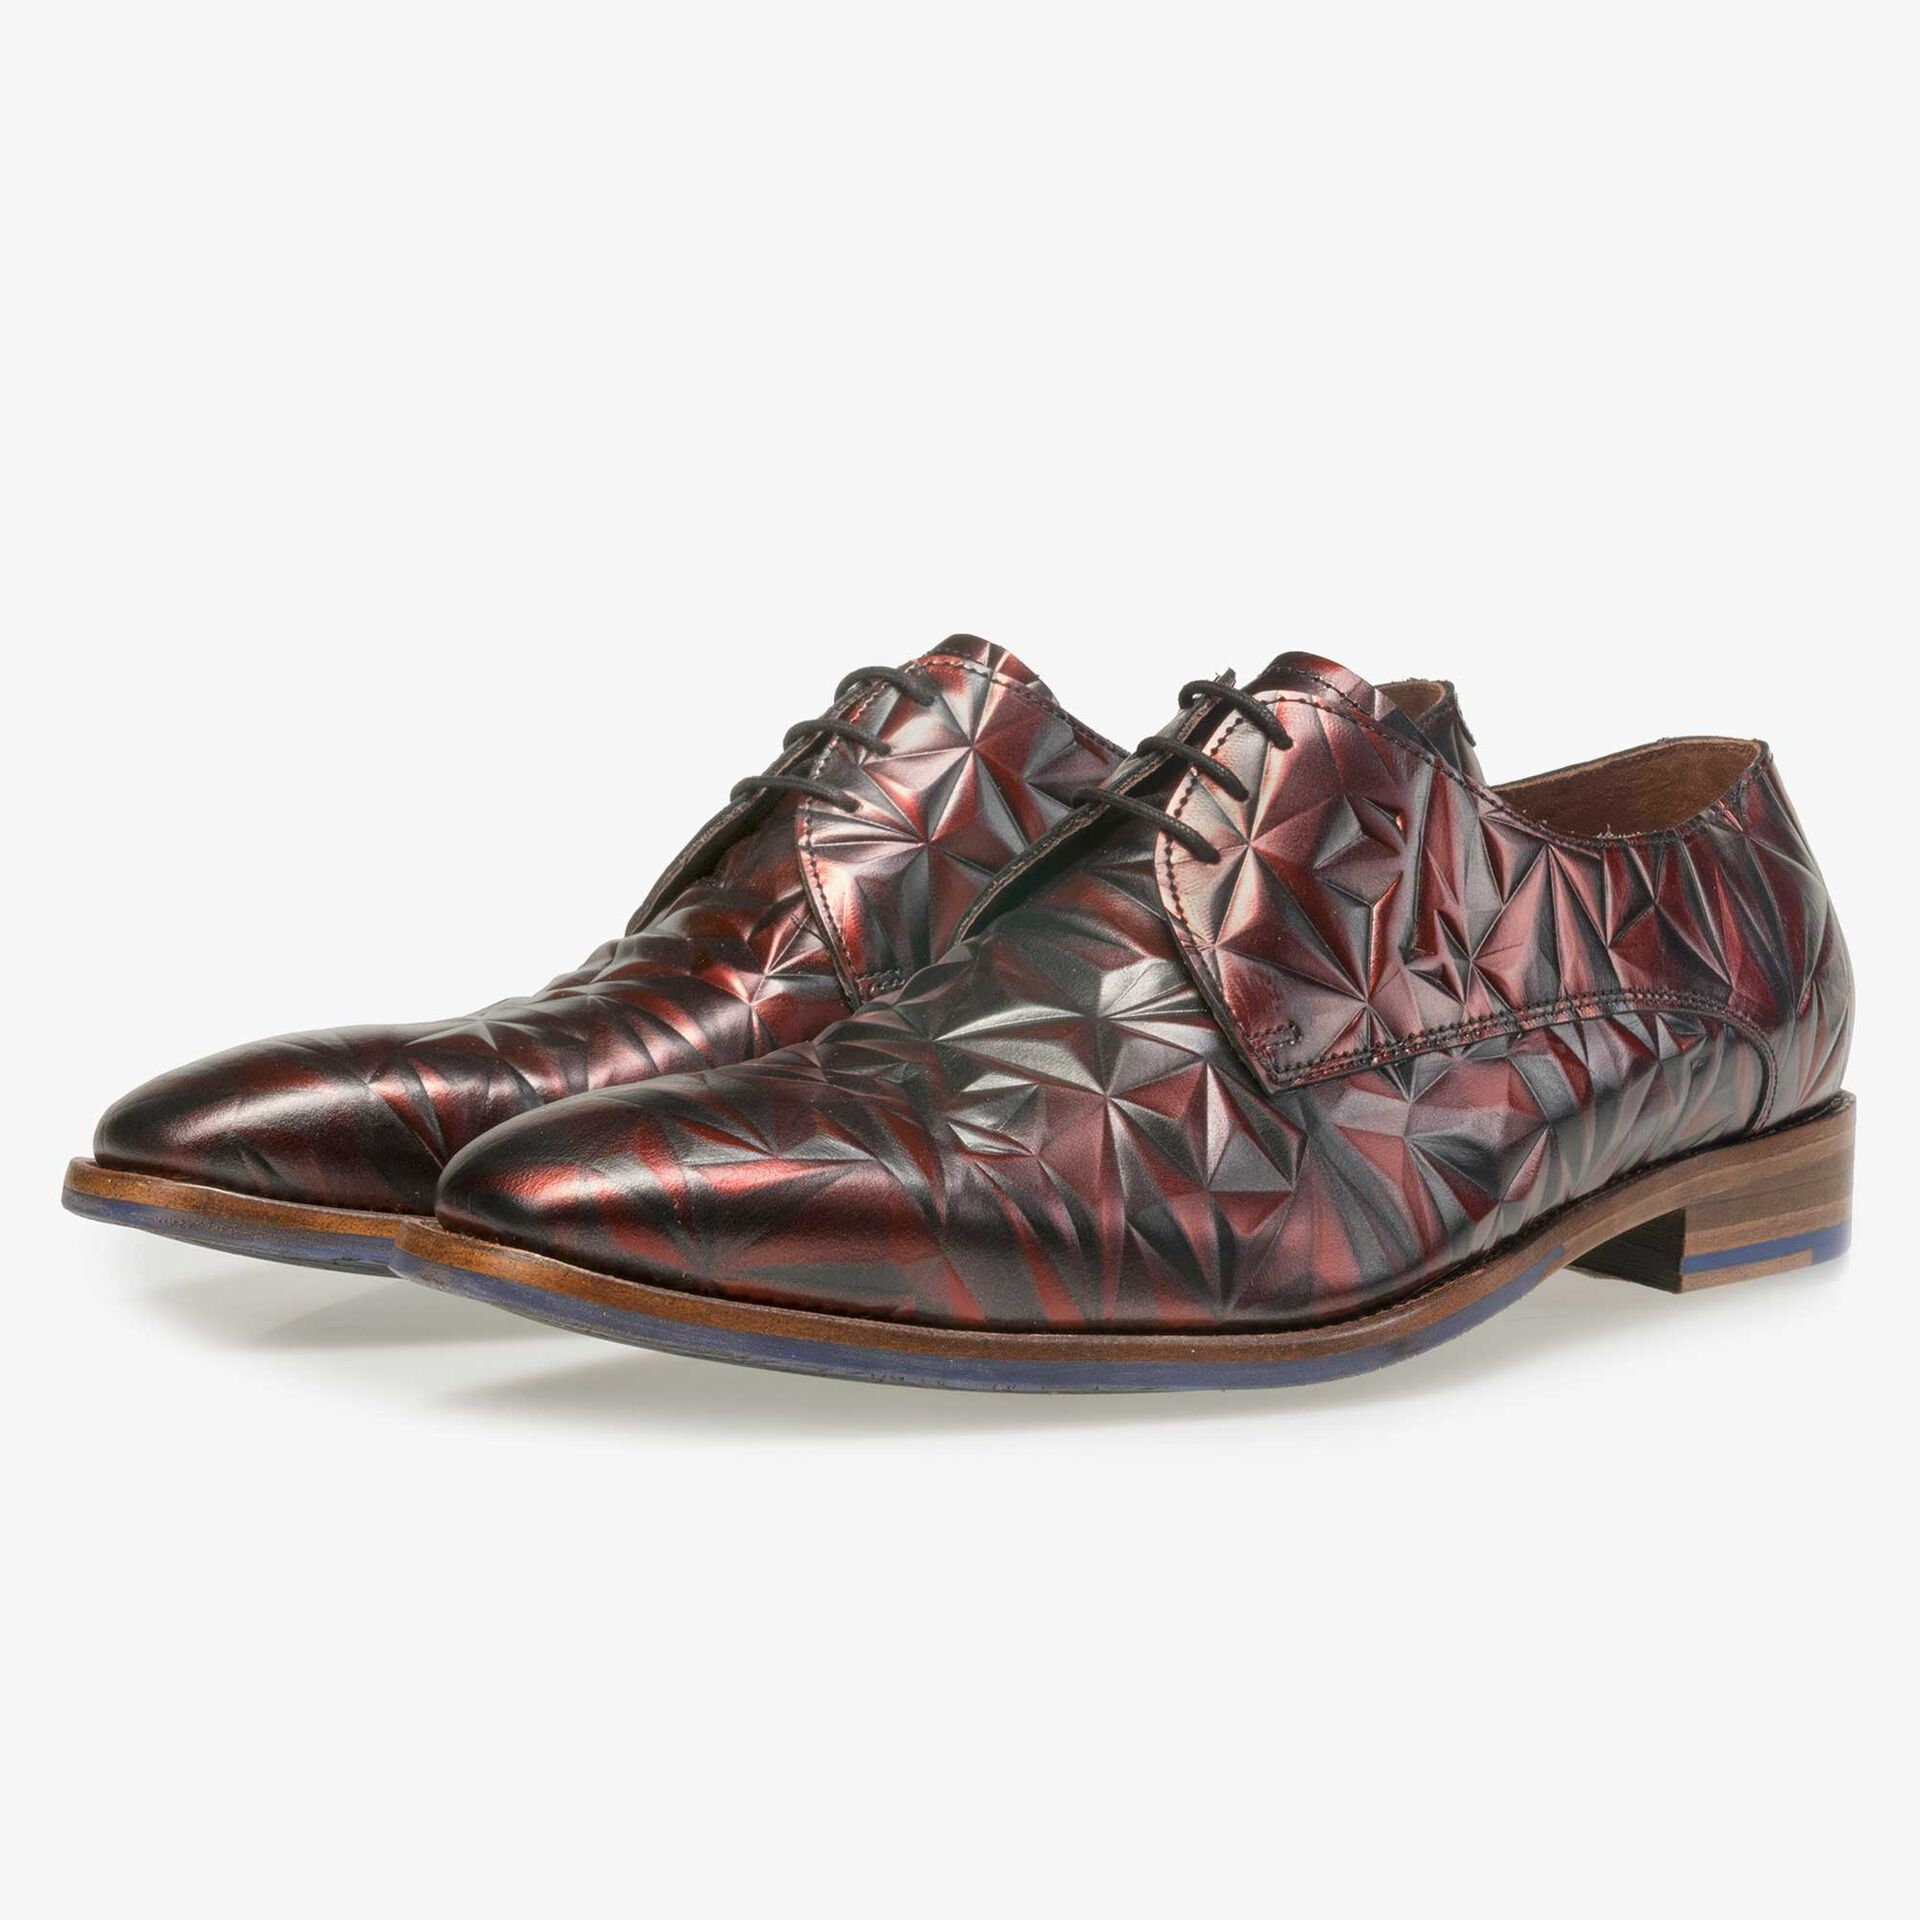 Floris van Bommel men's claret leather lace shoe finished with a black mother-of-pearl effect